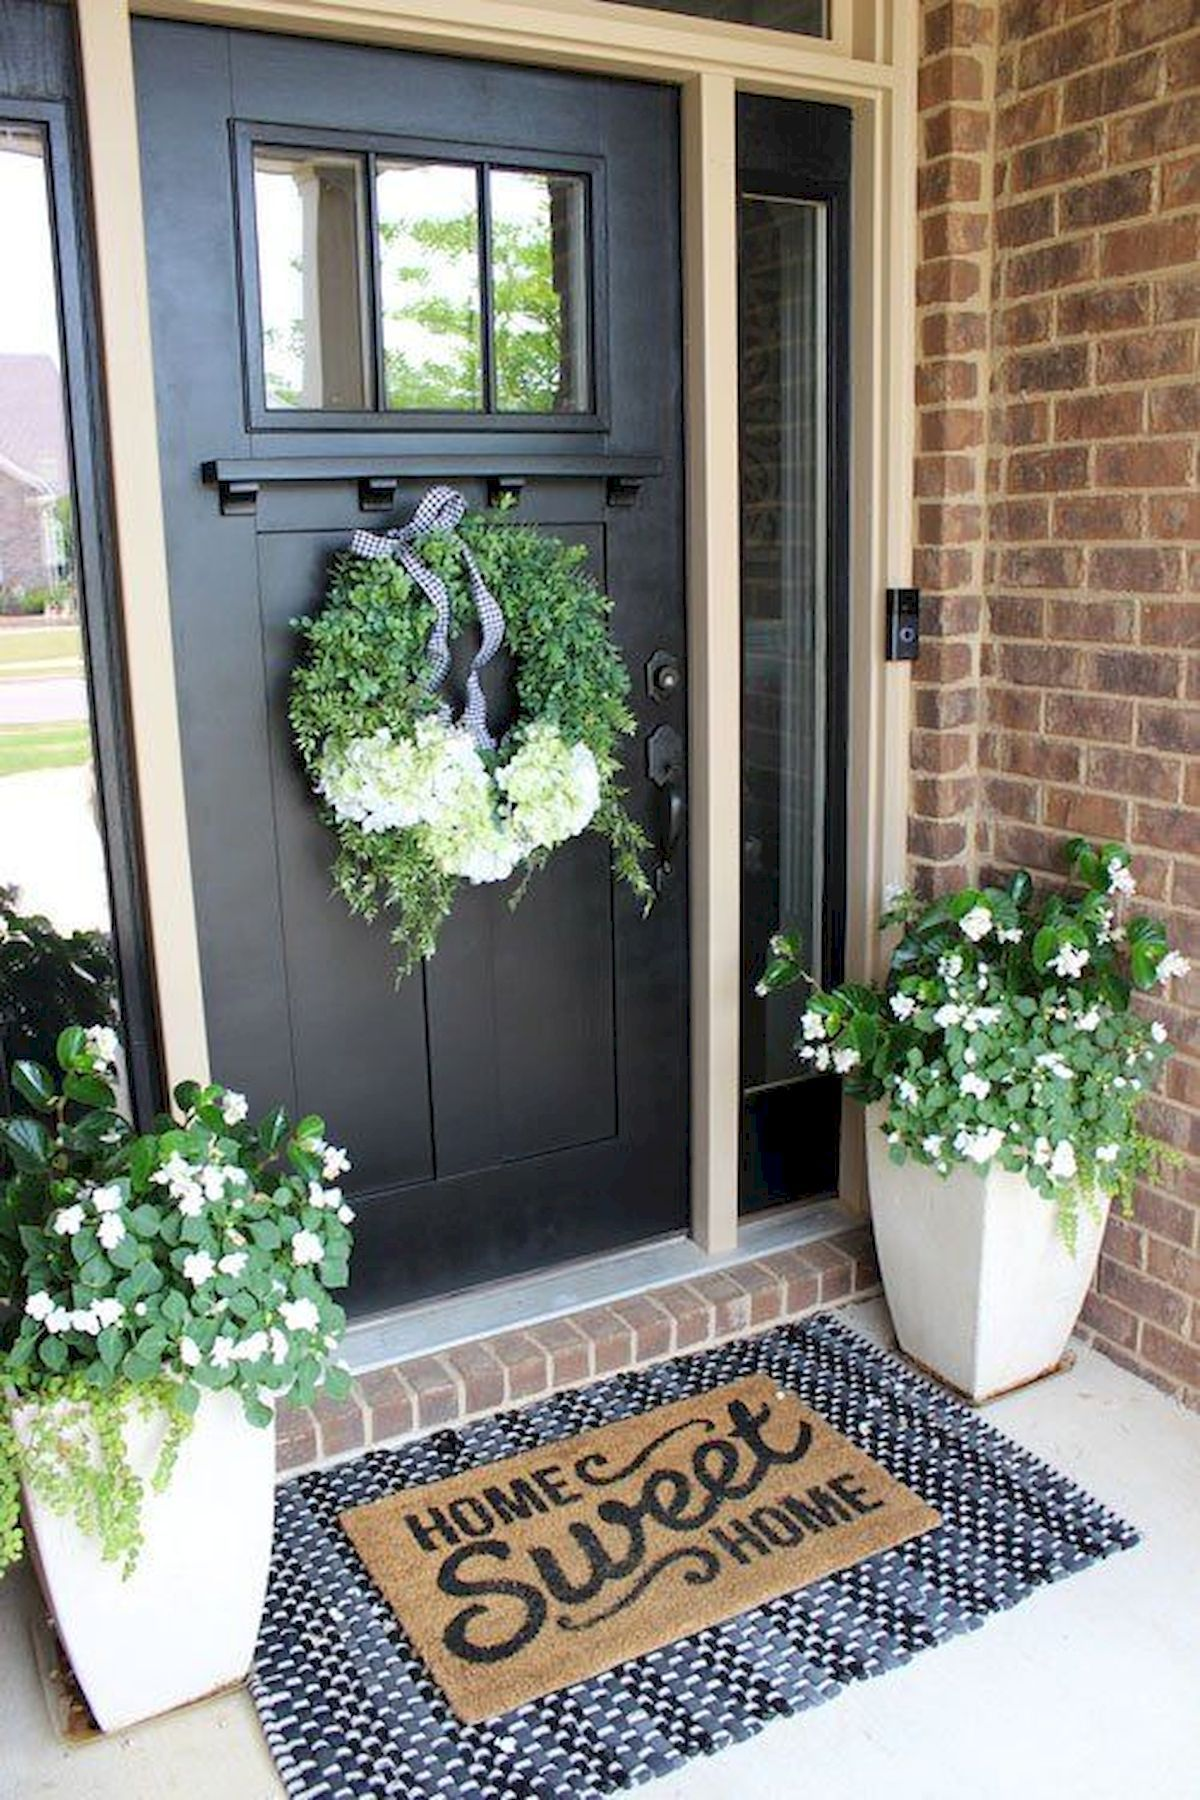 Awesome 35 Beautiful Spring Decorations For Porch Https Livingmarch Com 35 Beautiful Spring Decoration Spring Porch Decor Front Porch Decorating Rustic Porch